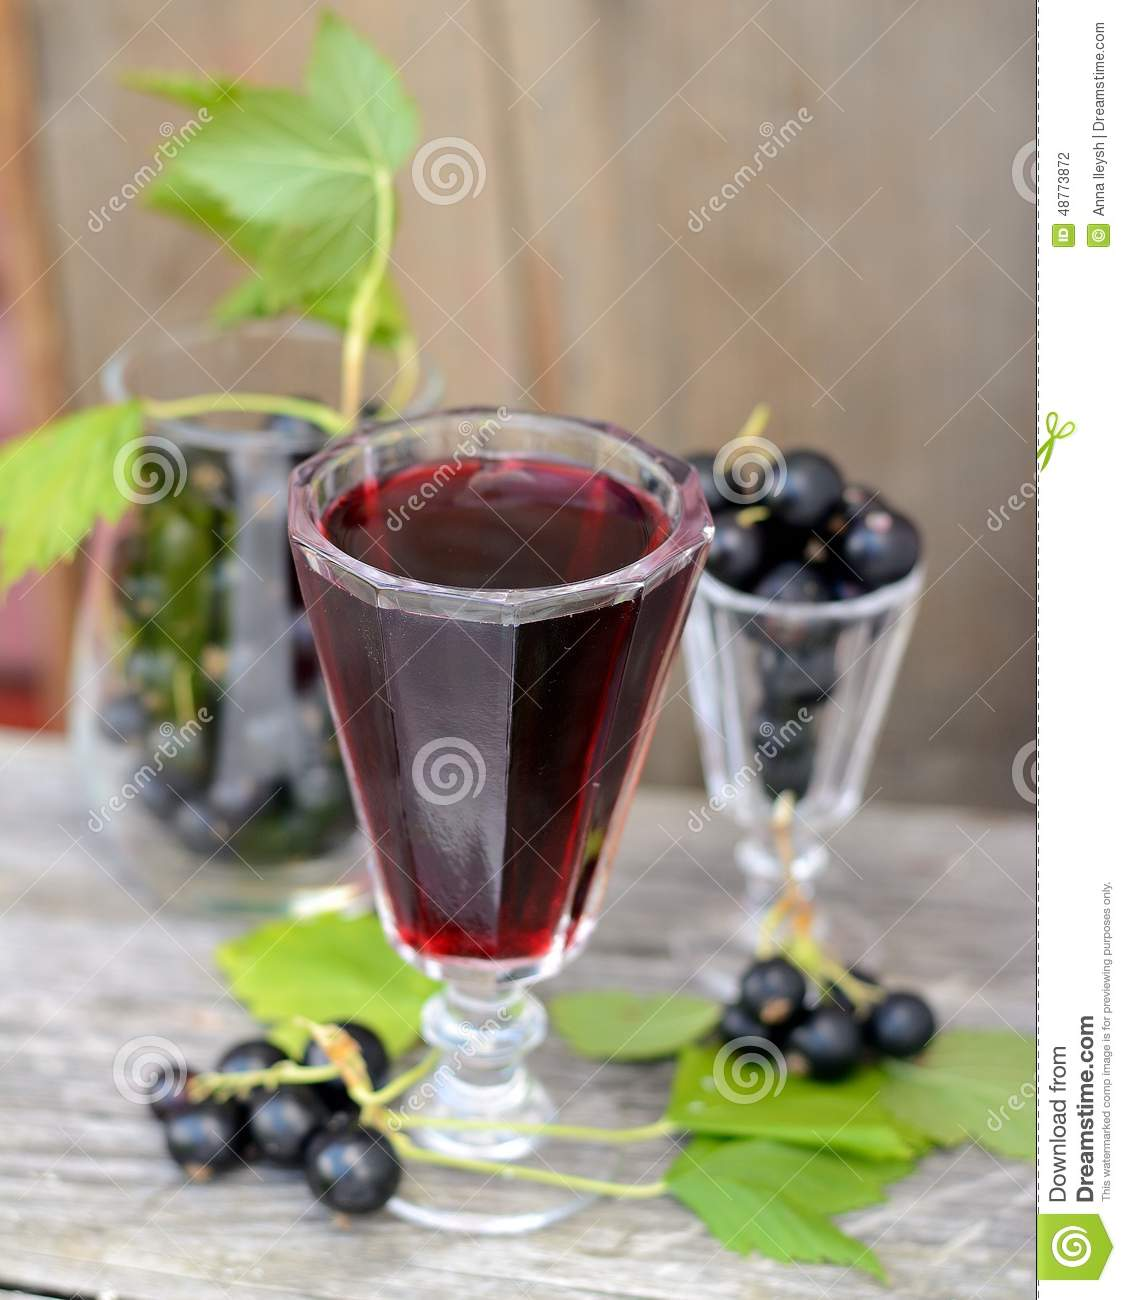 Black currant liquor and ripe berries on wooden